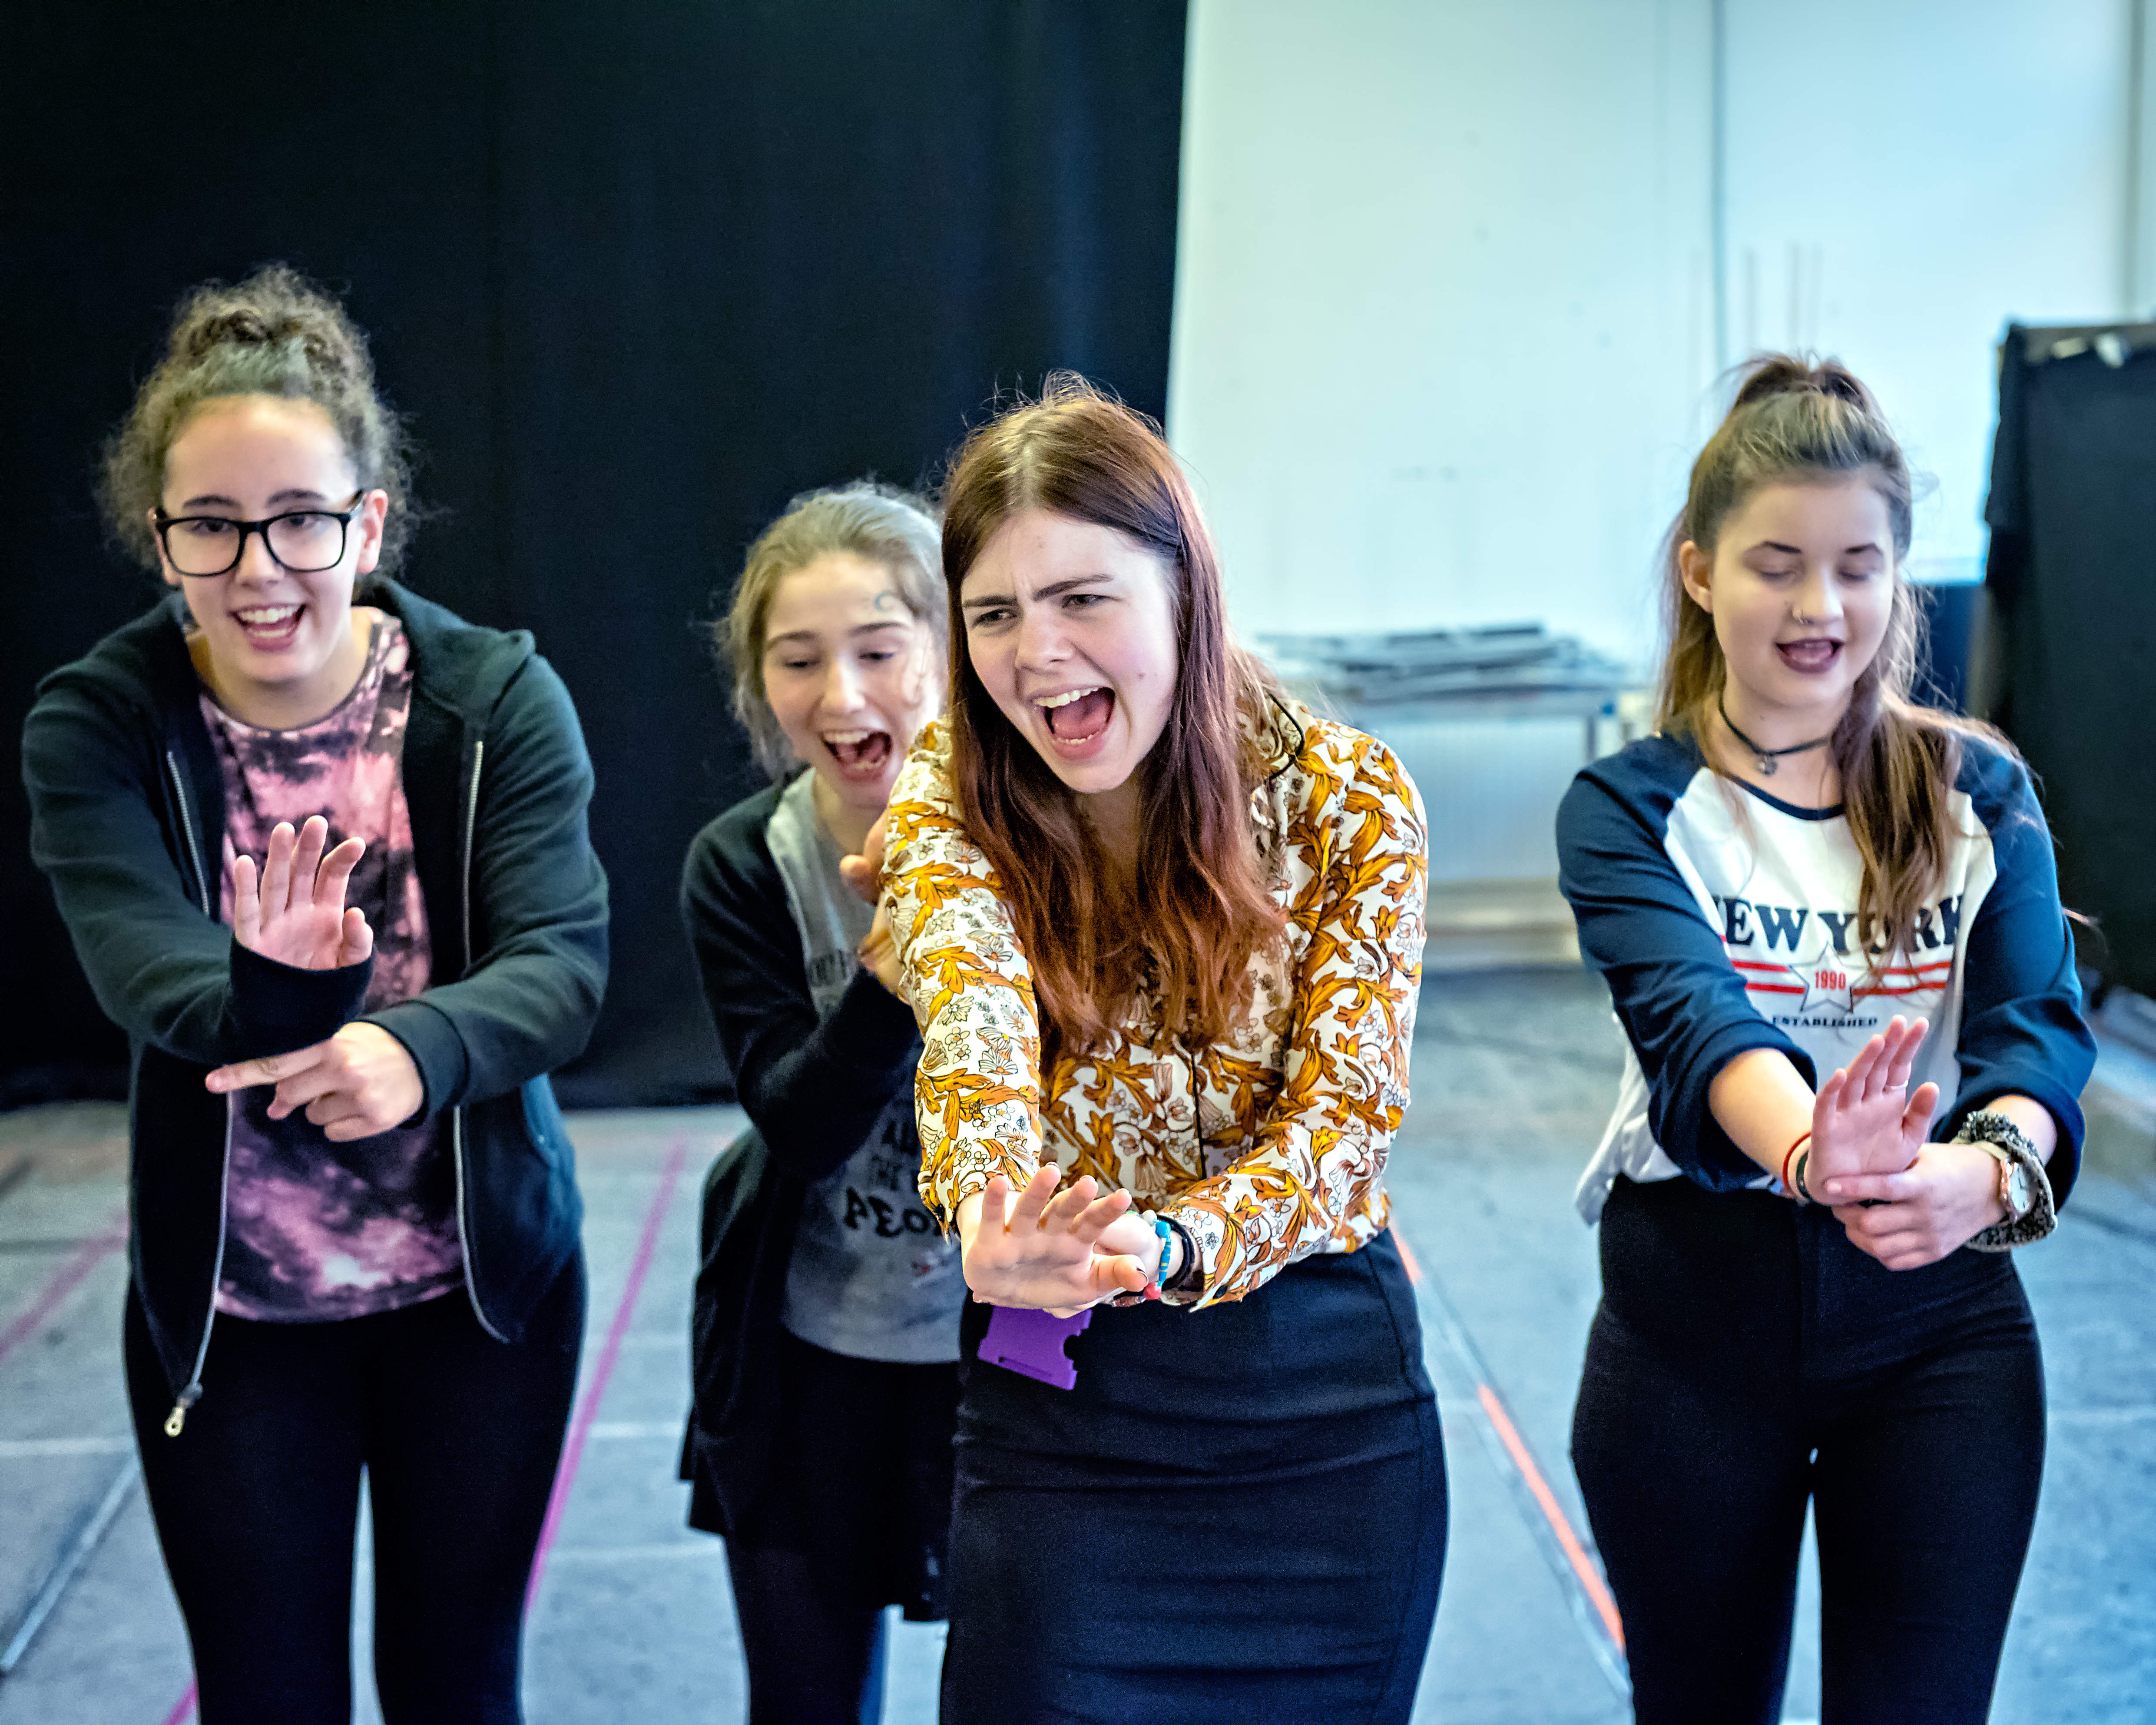 Loud and passionate: Leeds young people making their voices heard at West Yorkshire Playhouse